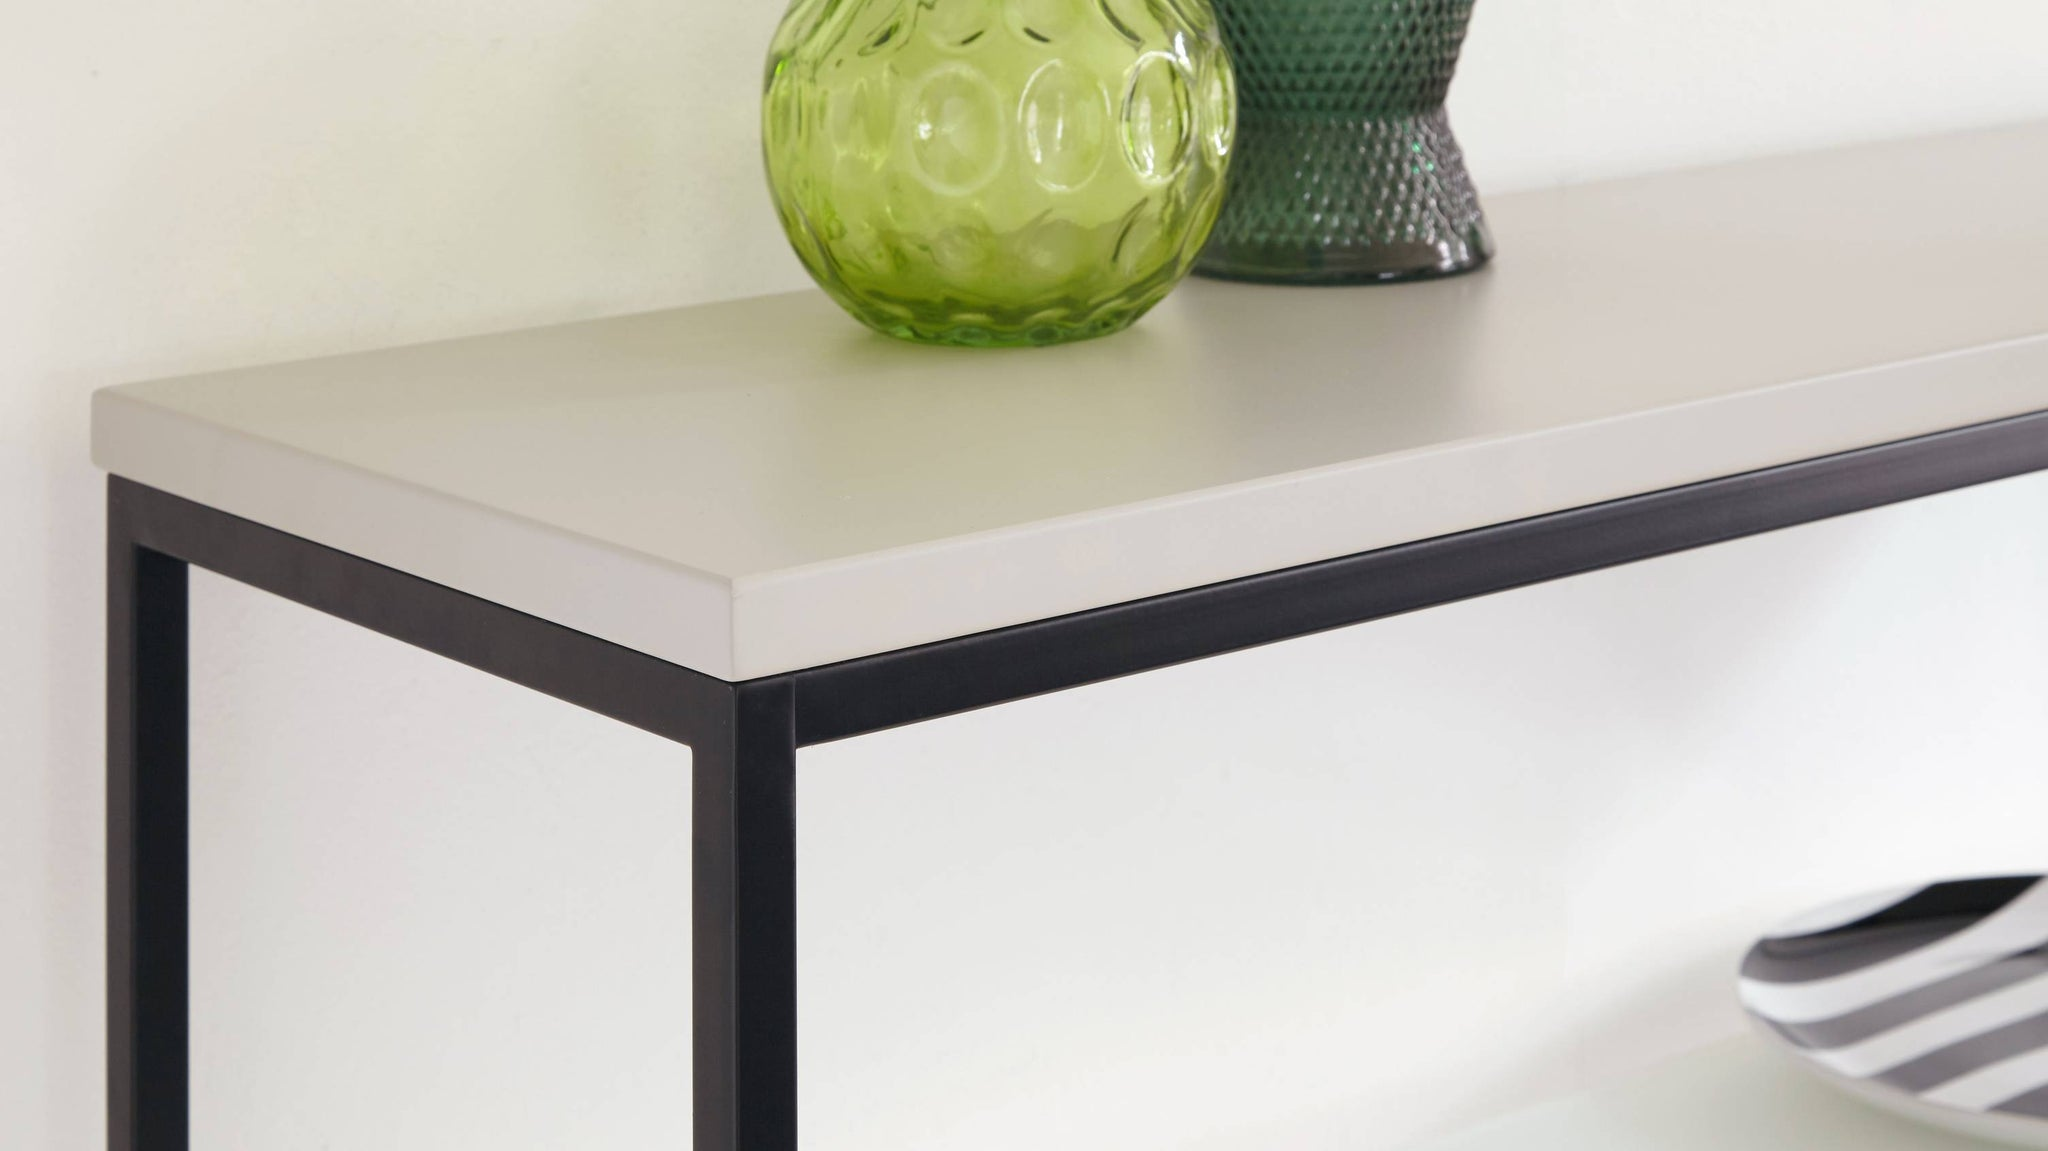 Fashionable console table